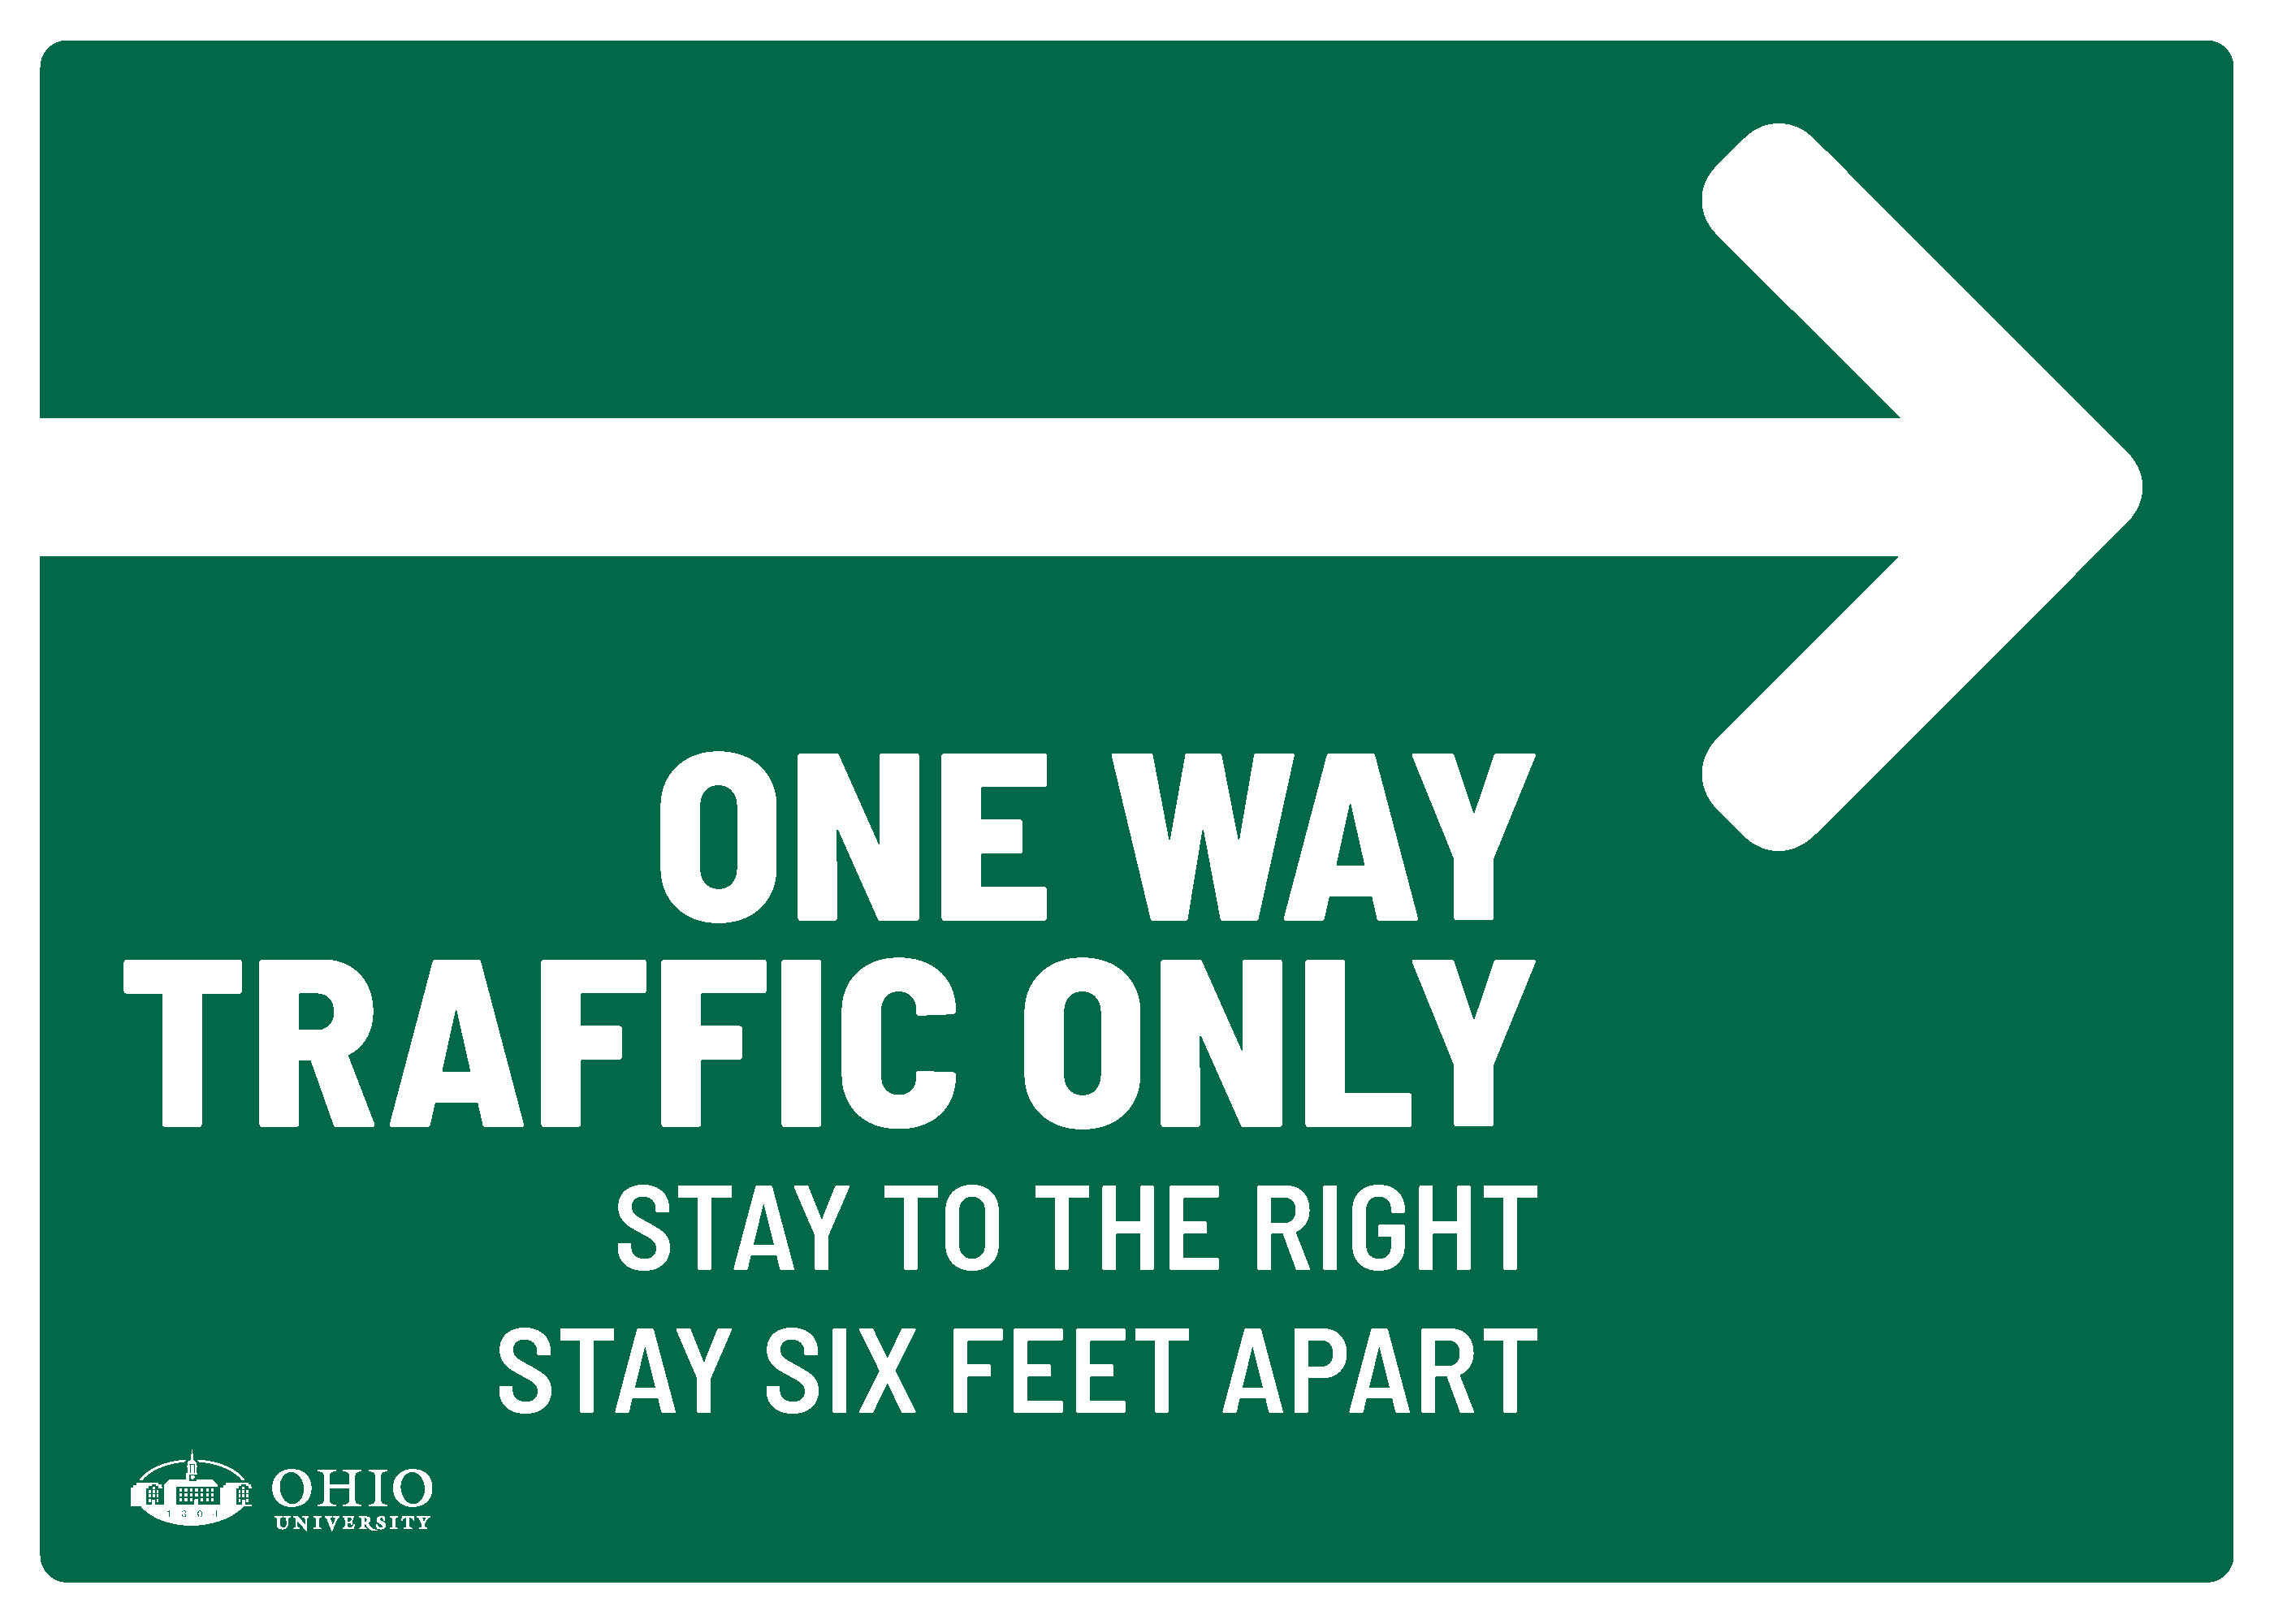 Sign that says: Right. One way traffic only. Stay to the right. Stay six feet apart.